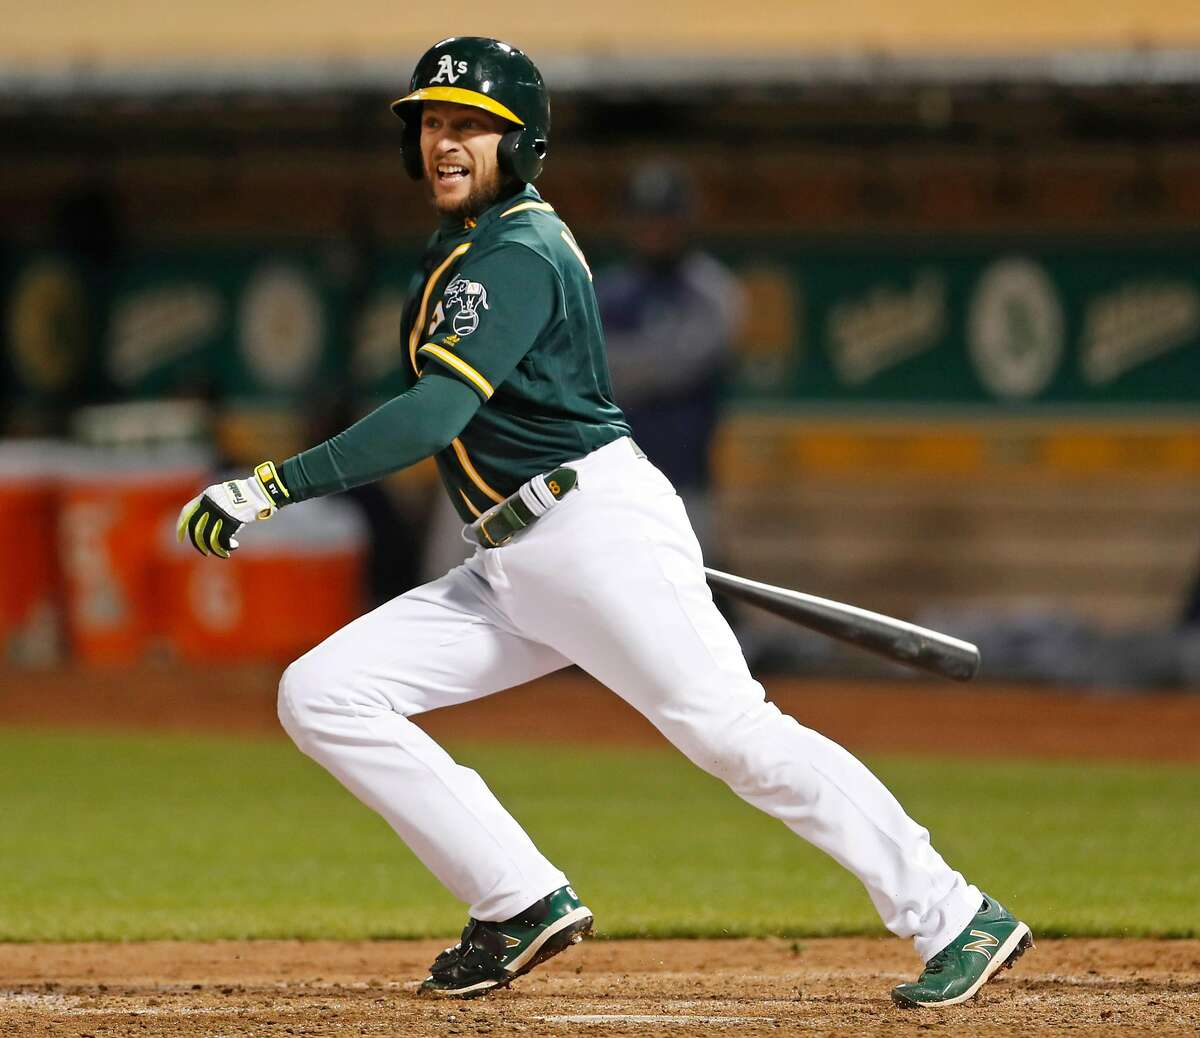 They lost Jed Lowrie Jed Lowrie, you may be thinking. Really? The diminutive infielder logged 157 games for the A's last year, compiling 4.9 Fangraphs Wins Above Replacement (or WAR) in the process. Only two second basemen were better last year, per Fangraphs. A free agent, Lowrie penned a two-year, $20 million deal with the Mets over the offseason. The A's traded for Jurickson Profar to replace Lowrie. Profar, a former top prospect, finally broke through last year in his first-ever full season in the majors, posting a respectable .254/.335/.458 batting line in Texas. Profar is a nice player, but Lowrie was one of the best players in the American League last year. That type of production will be difficult to replace.